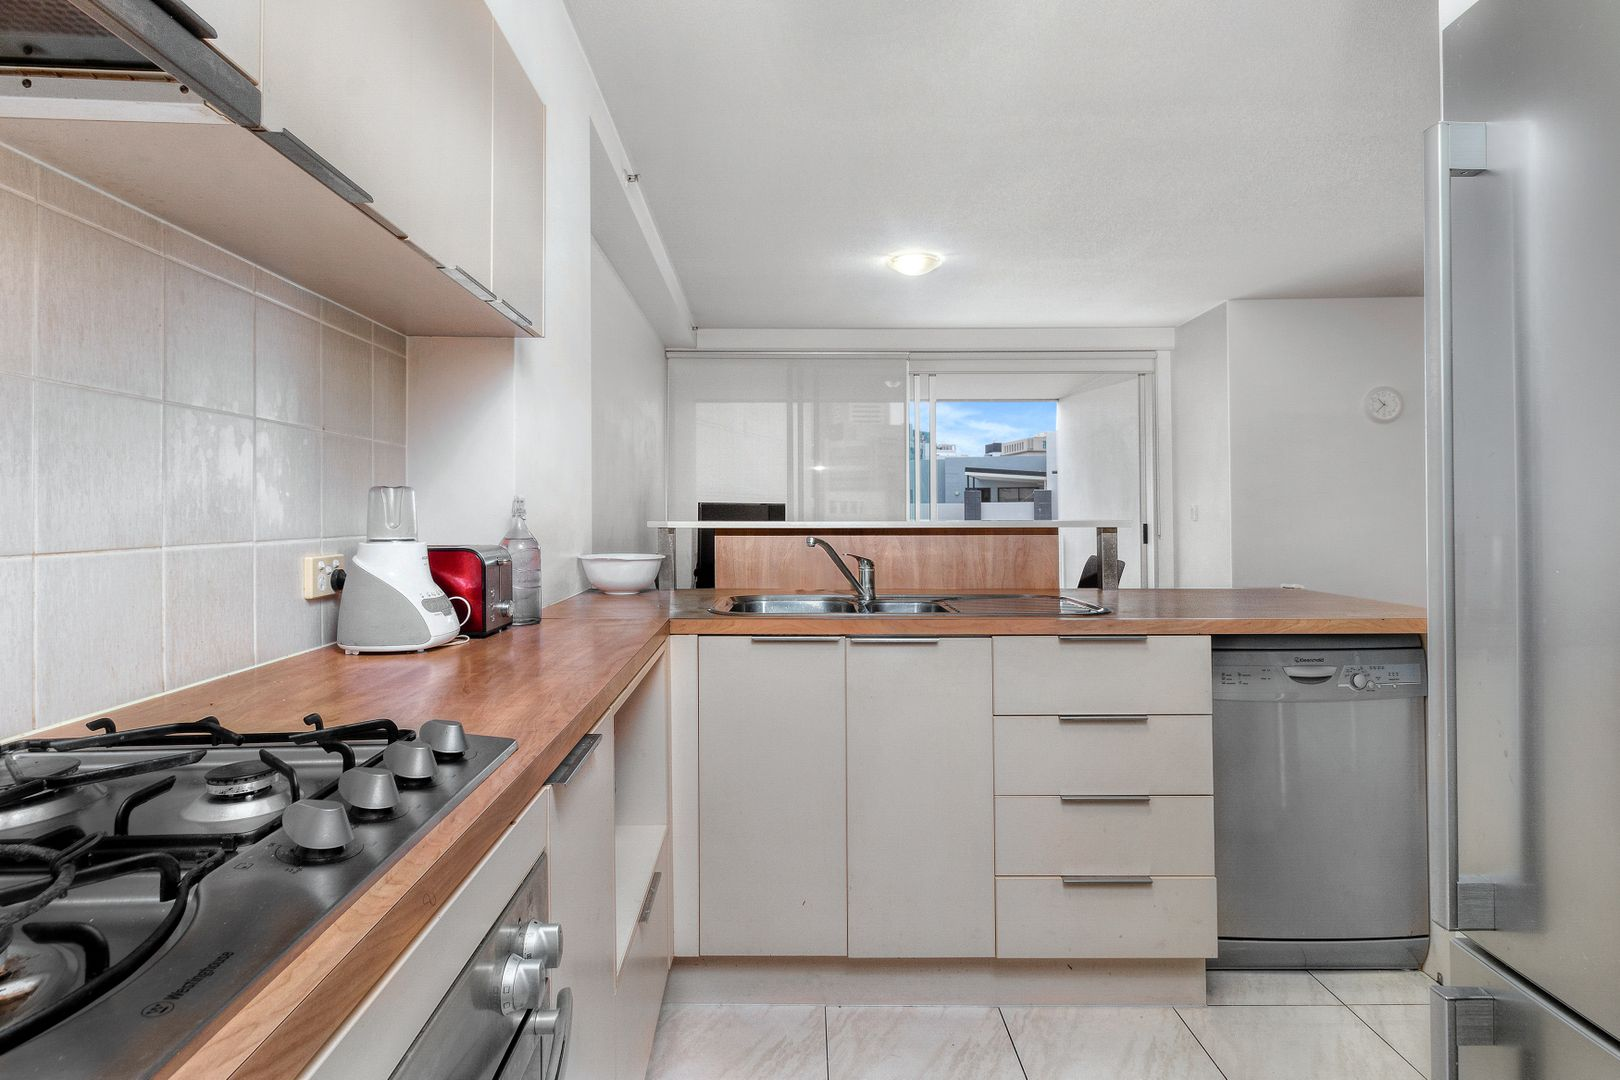 123/170 Leichhardt St, Spring Hill QLD 4000, Image 2